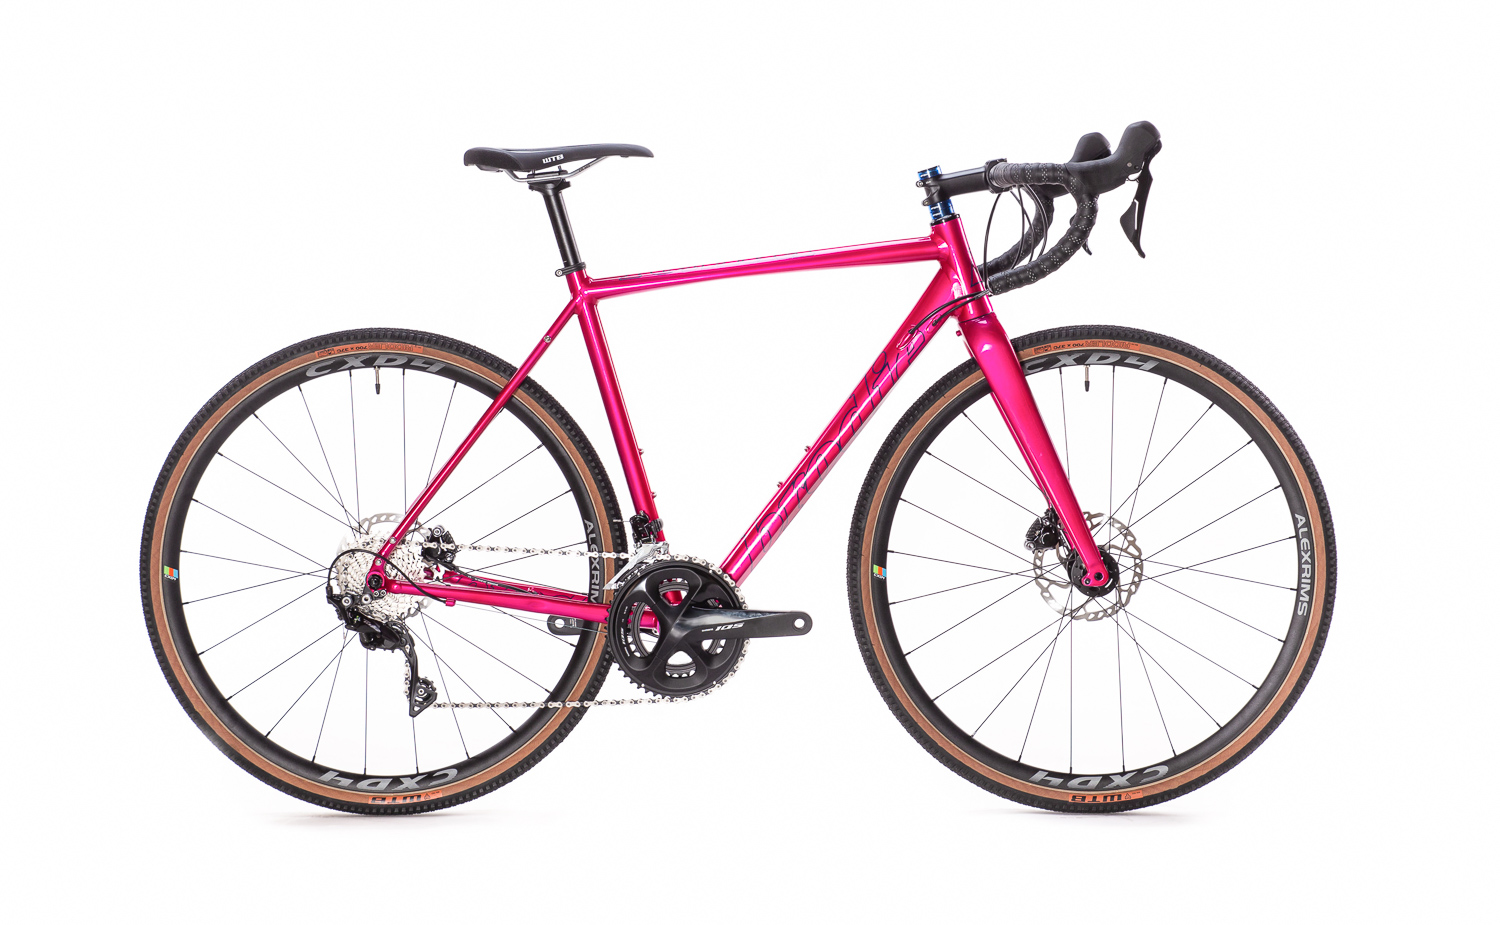 Have a look at the Romax Adventure in the X/Cross Gravel Adventure Series - $2999